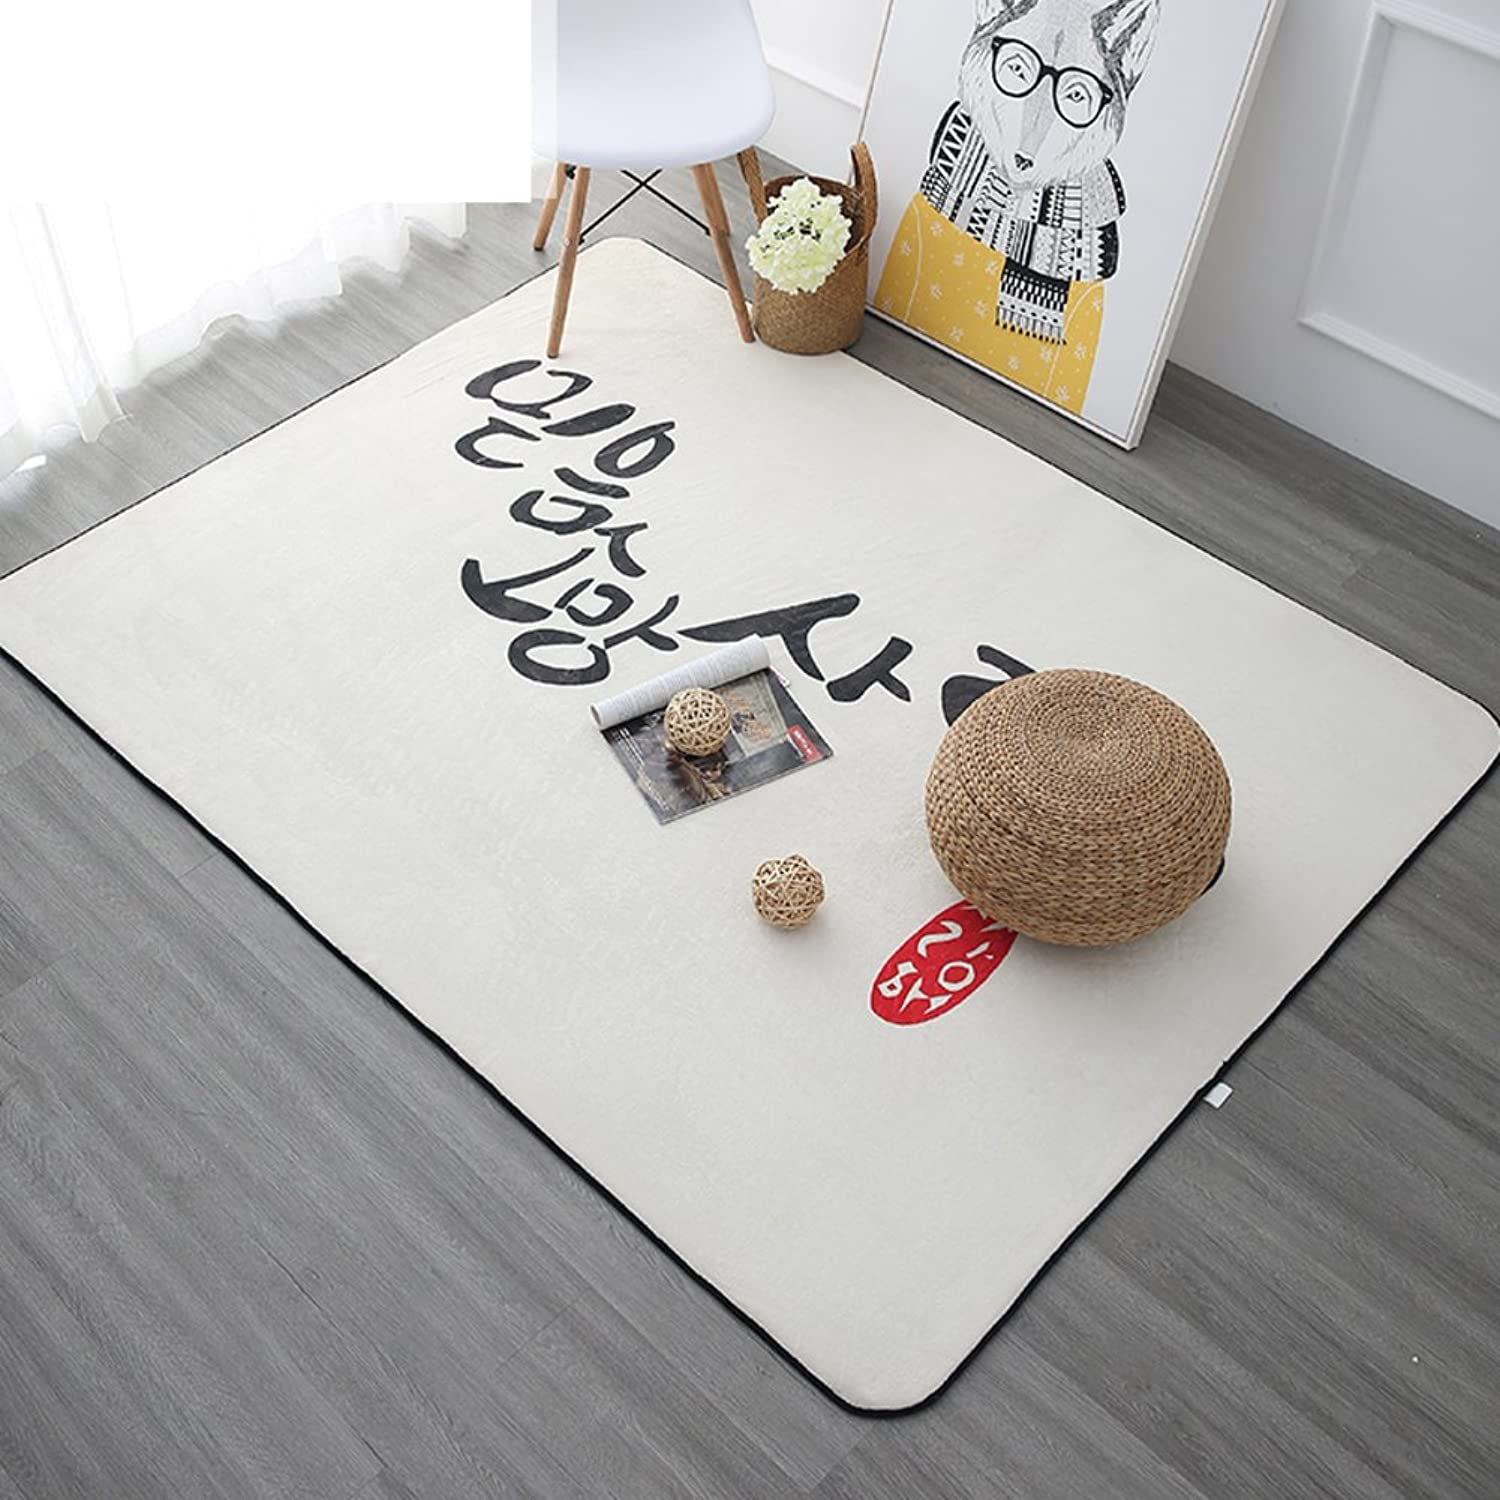 Carpet Nordic Living Room mat European-Style Simple mats Modern Bedroom mat-E 190x240cm(75x94inch)